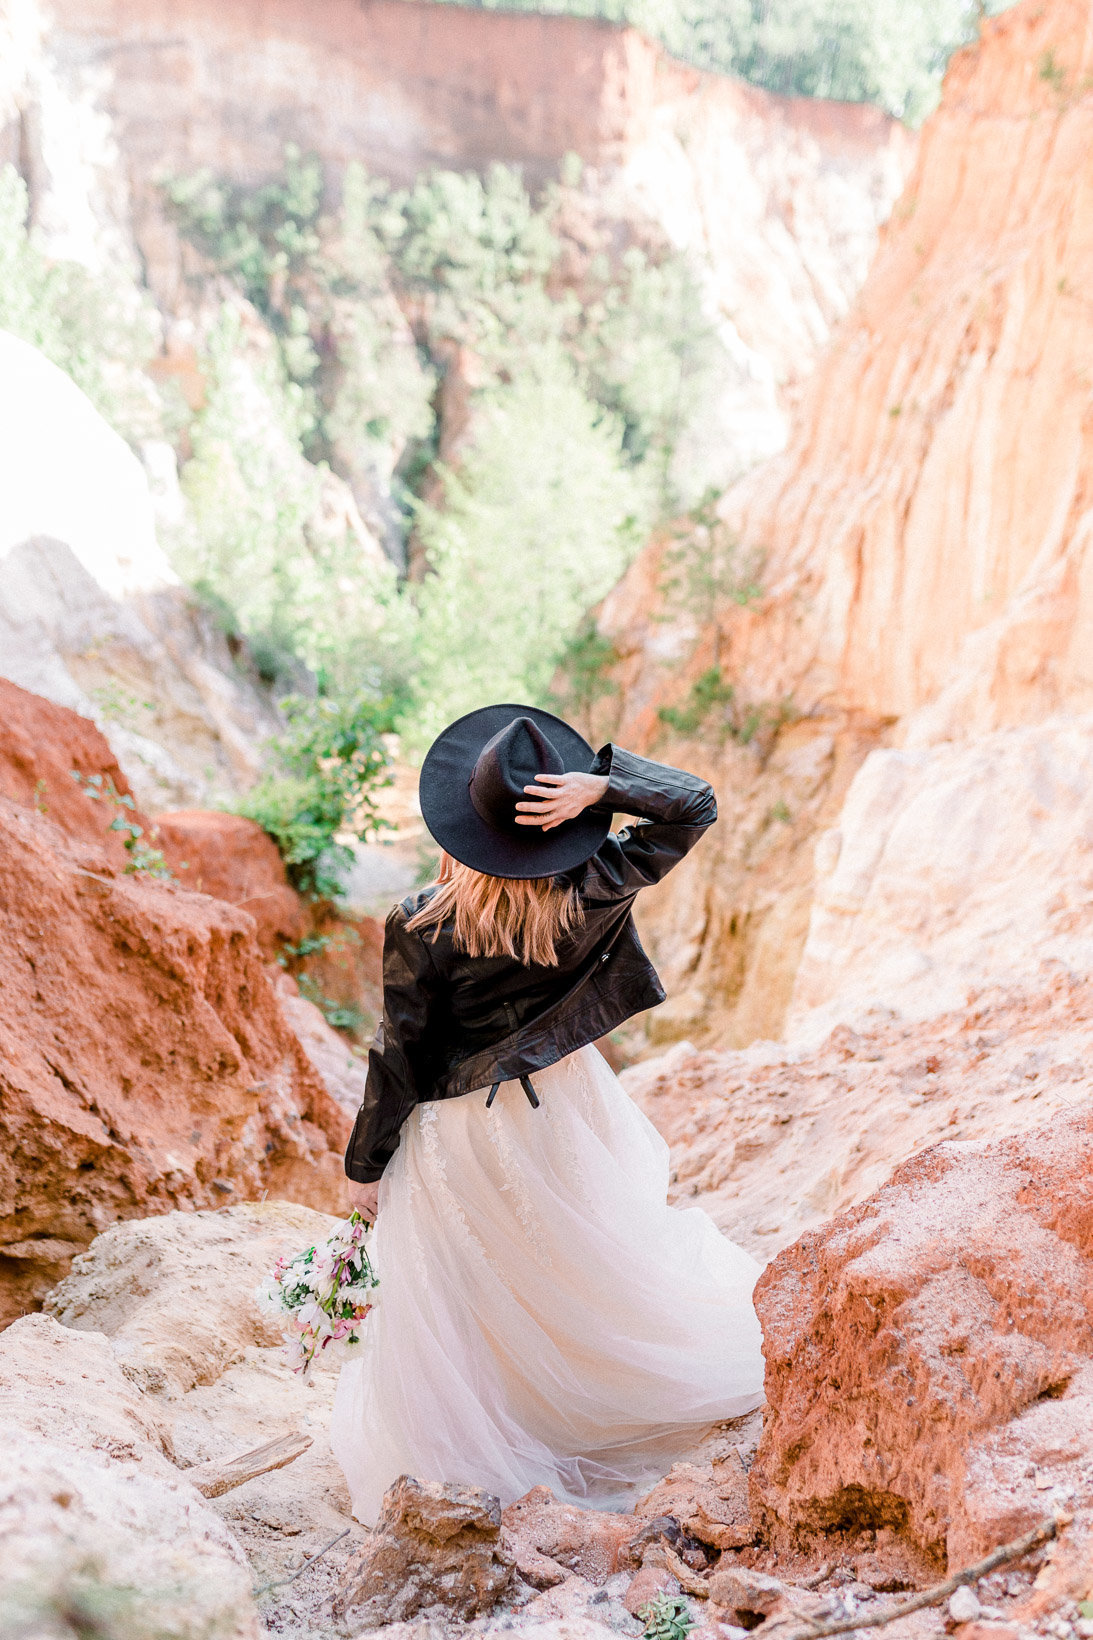 providence-canyon-wedding-elopement-adventure-hiking-georgia-arizona-17